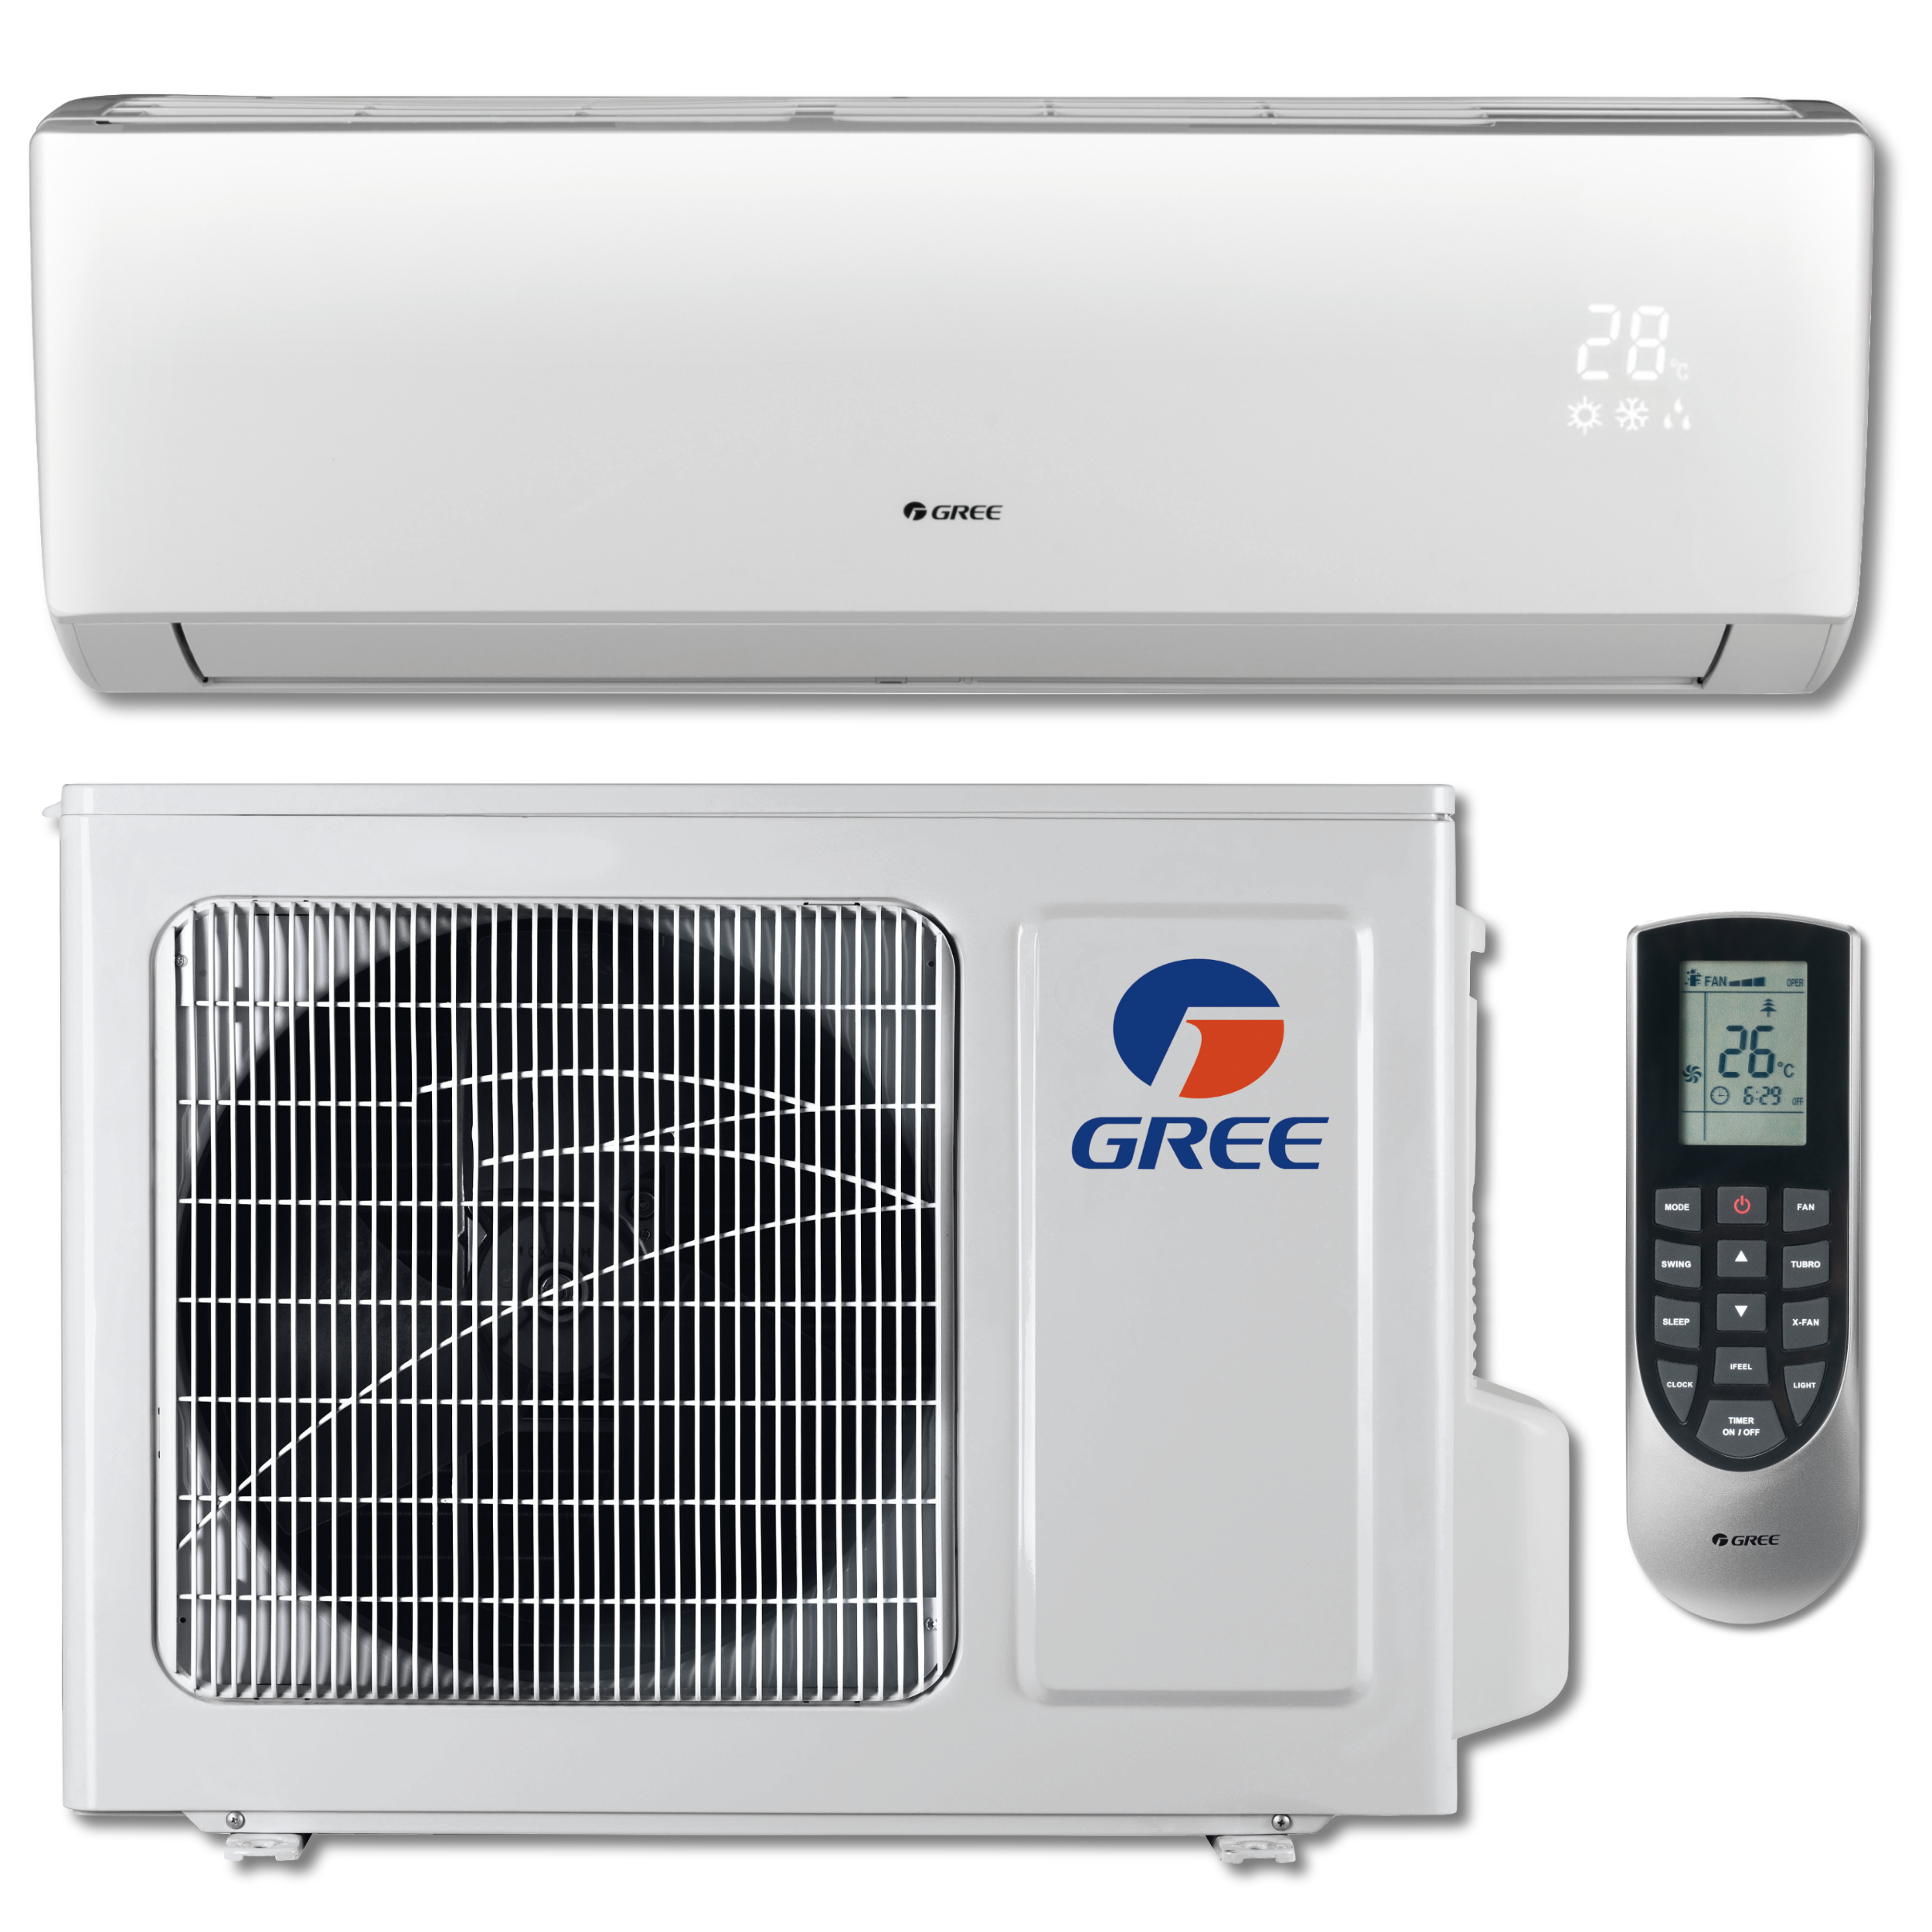 GREE VIREO+ 9,000 BTU Cool / 11,000 BTU Heat Ductless Mini Split Air Conditioning and Heating System (208-230V / 60Hz)